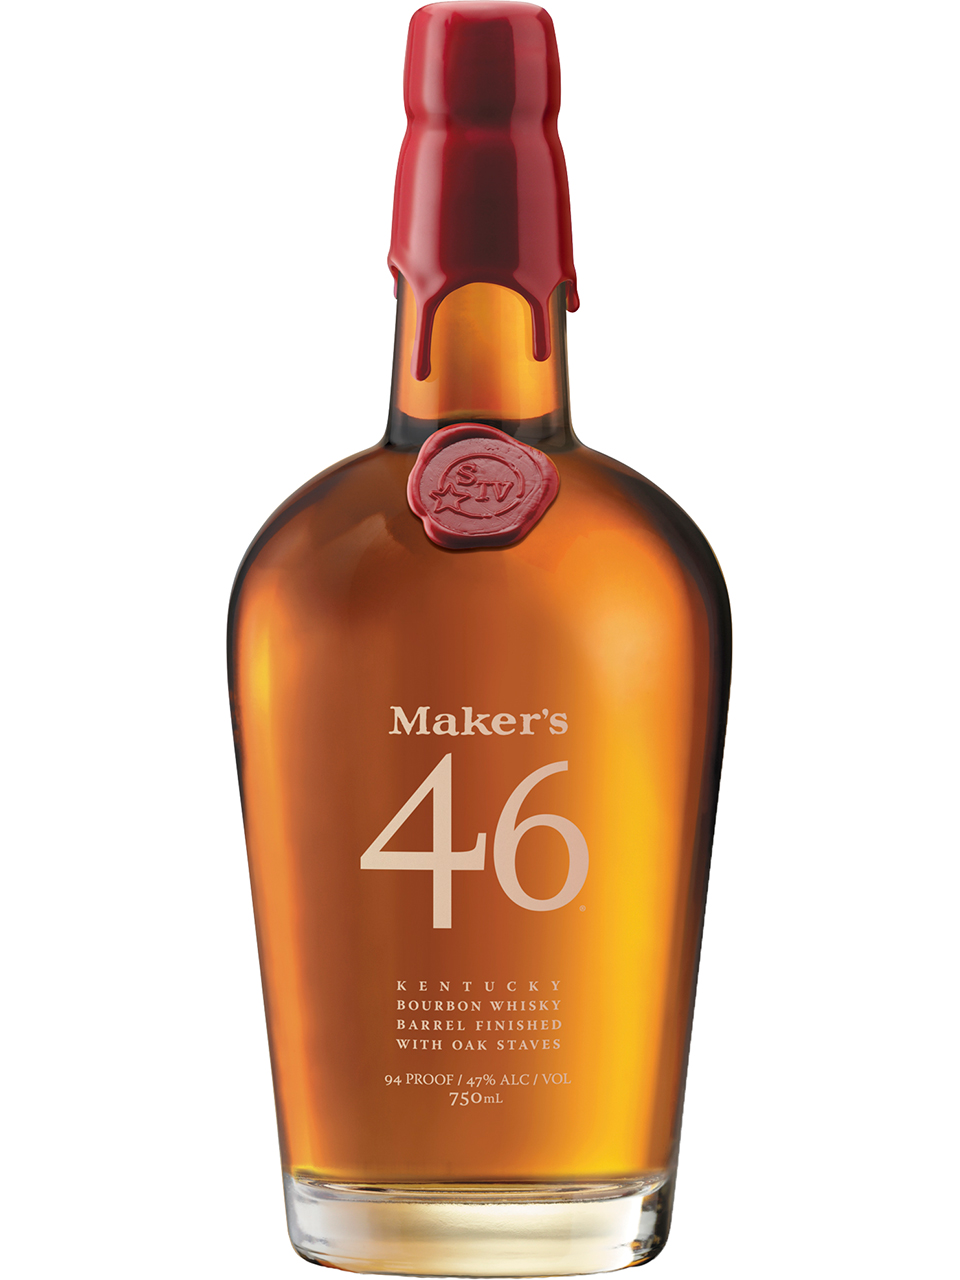 Maker's Mark 46 Kentucky Bourbon